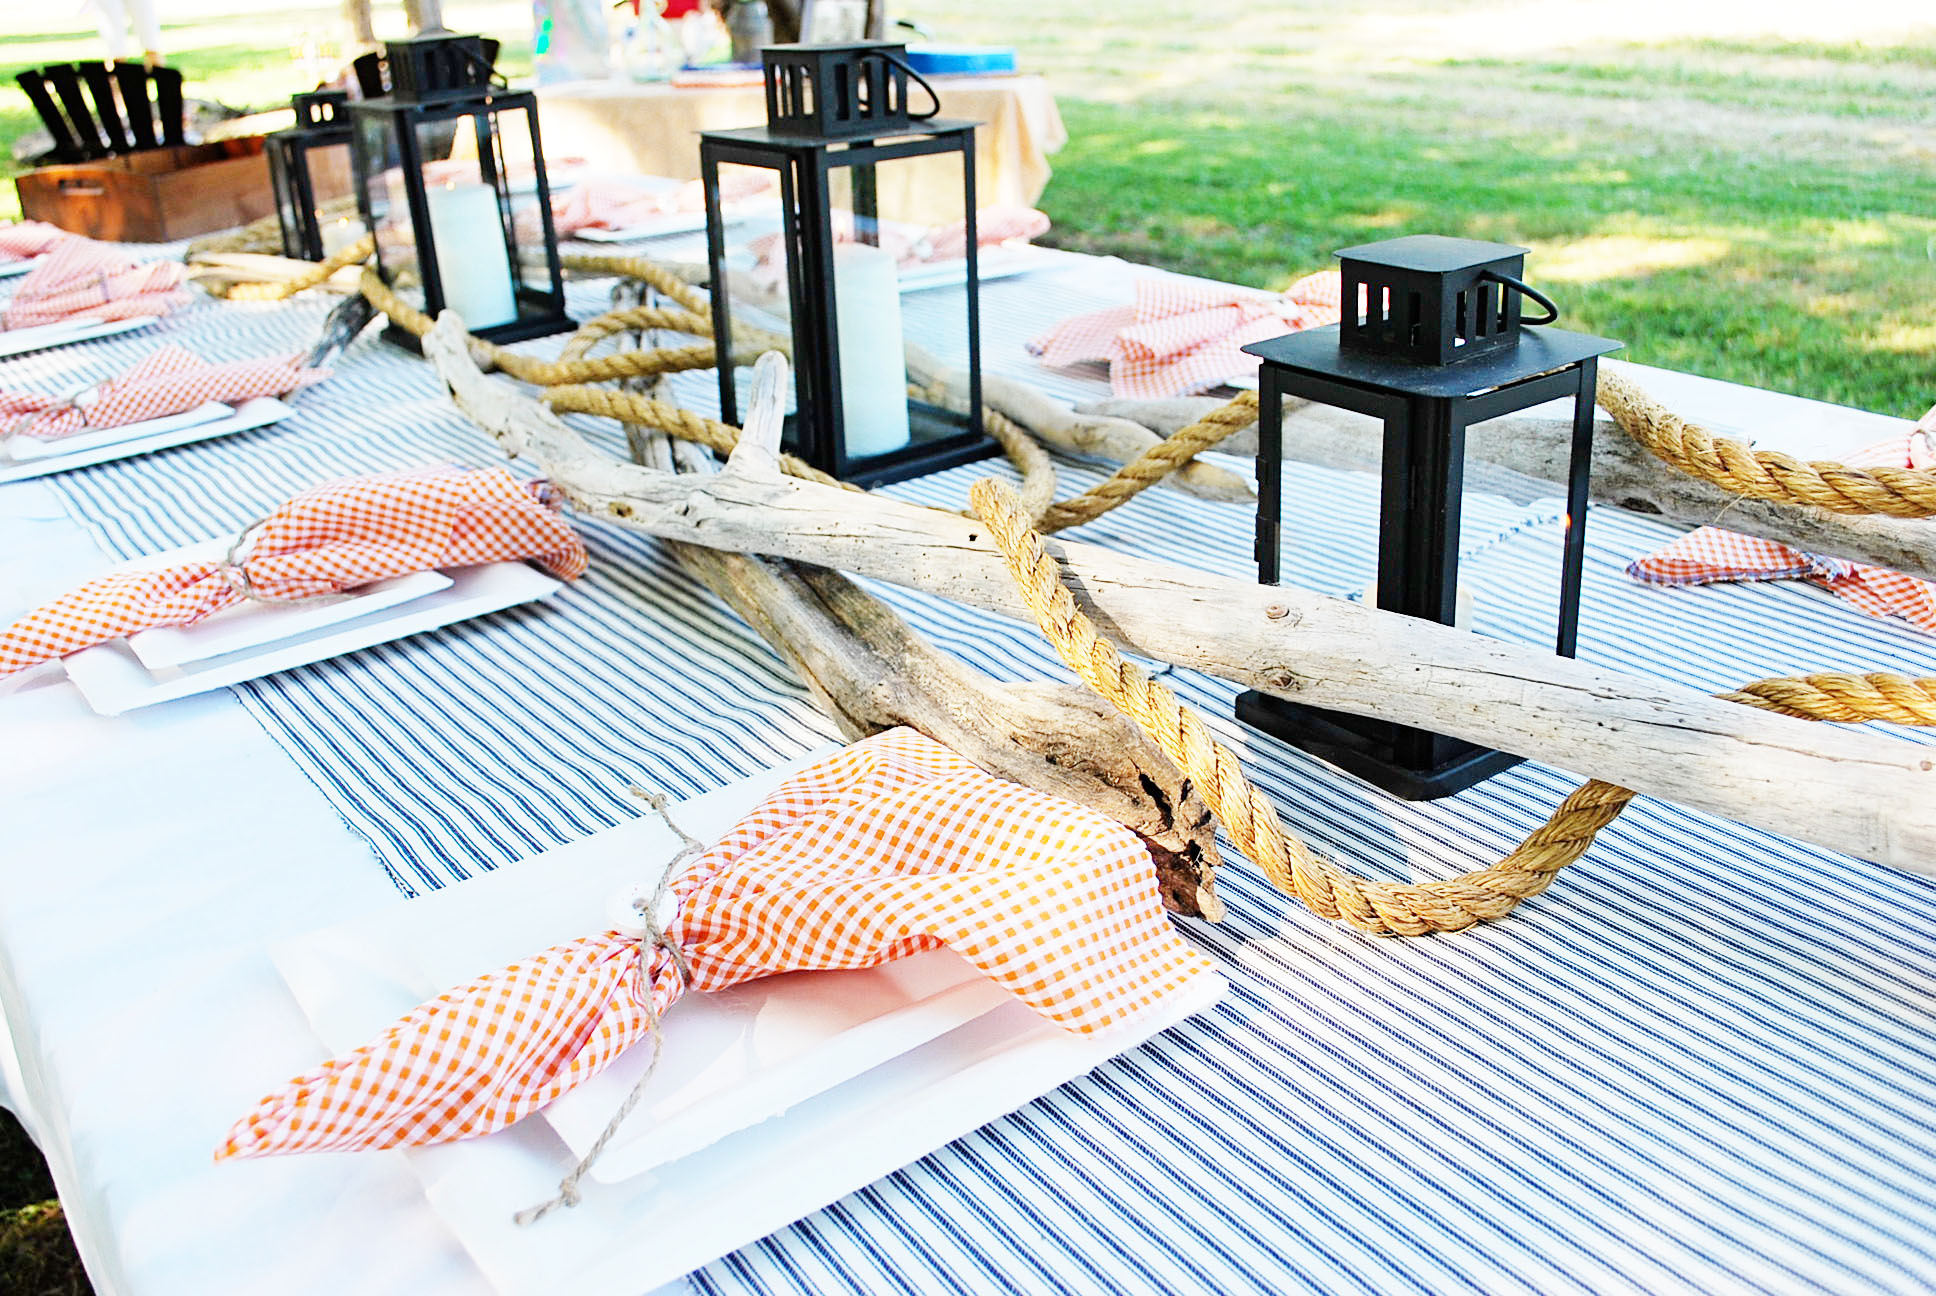 Day 4: Party Table Linens